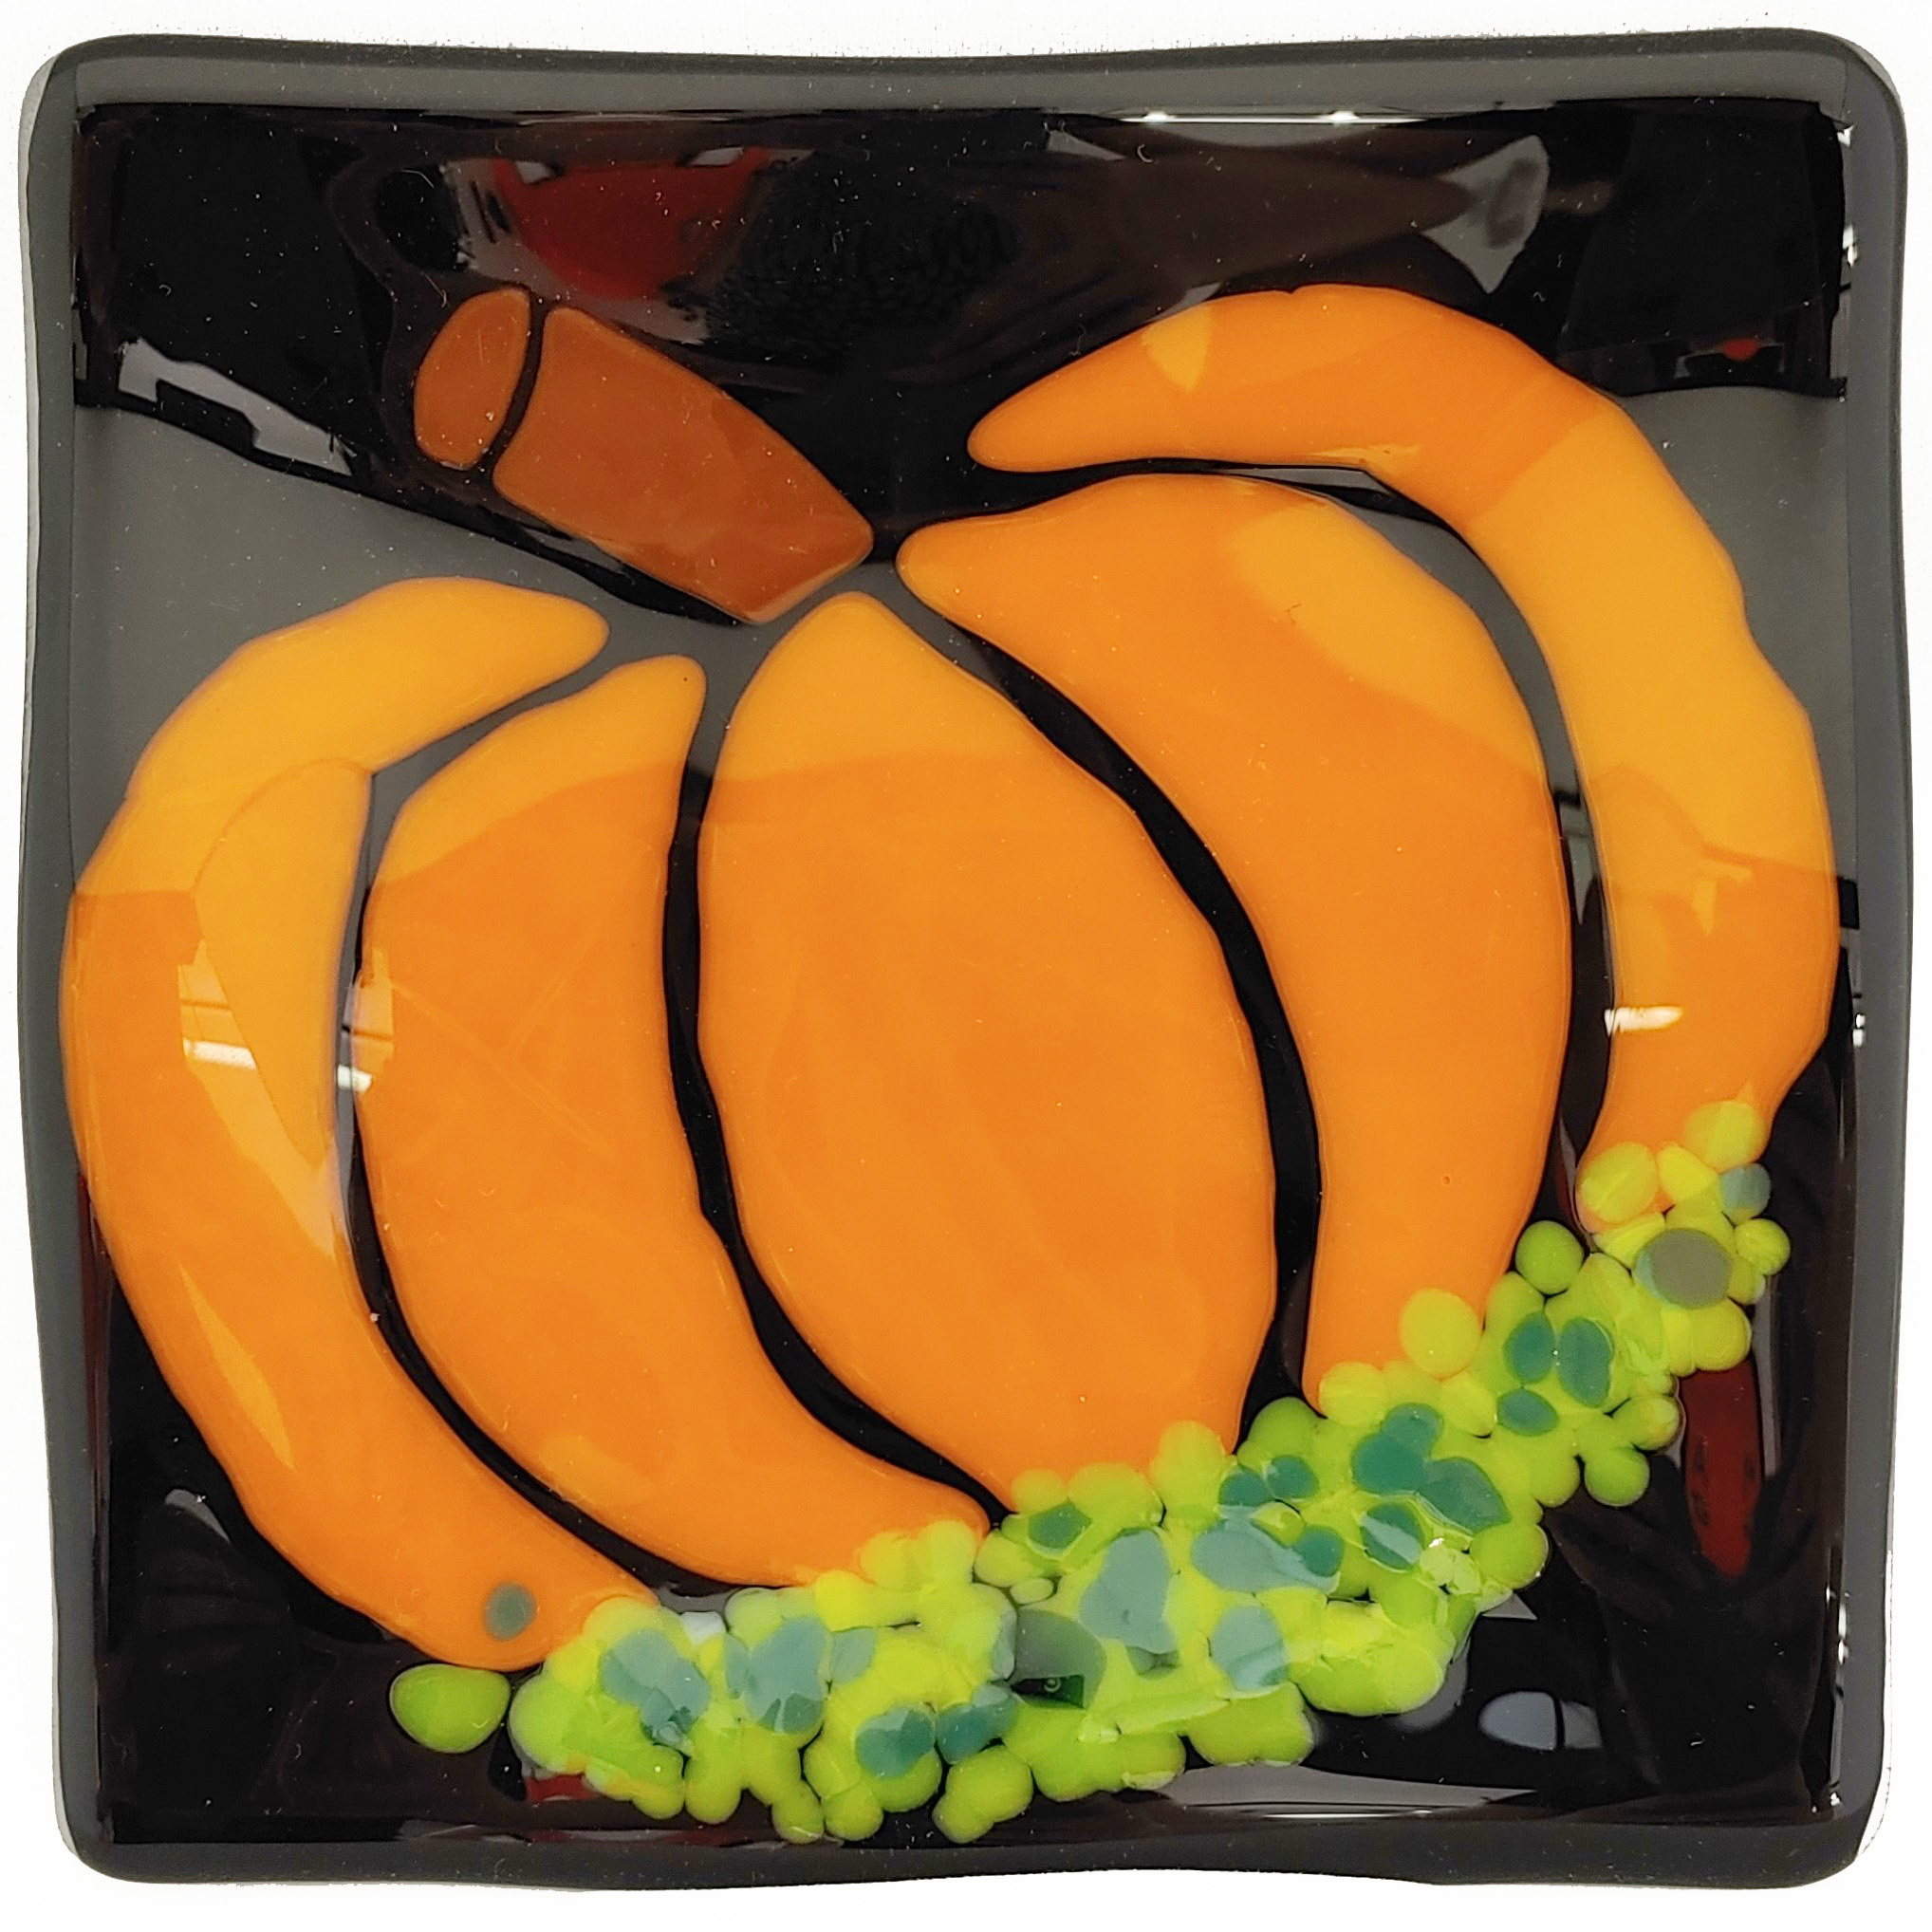 Pumpkin Plate - October 13, 1:00 PM - 2:30 PMWhat better way to add a little fall to your home than a perfect pumpkin plate! Cutting curves and using negative space are what set this project apart. Sometimes a simple design is what makes the biggest statement, and that hold true with this plate as well. Featured Project: Wavy Plate Skills Learned: Cutting glass, using negative space Ages: 12+ (Check out